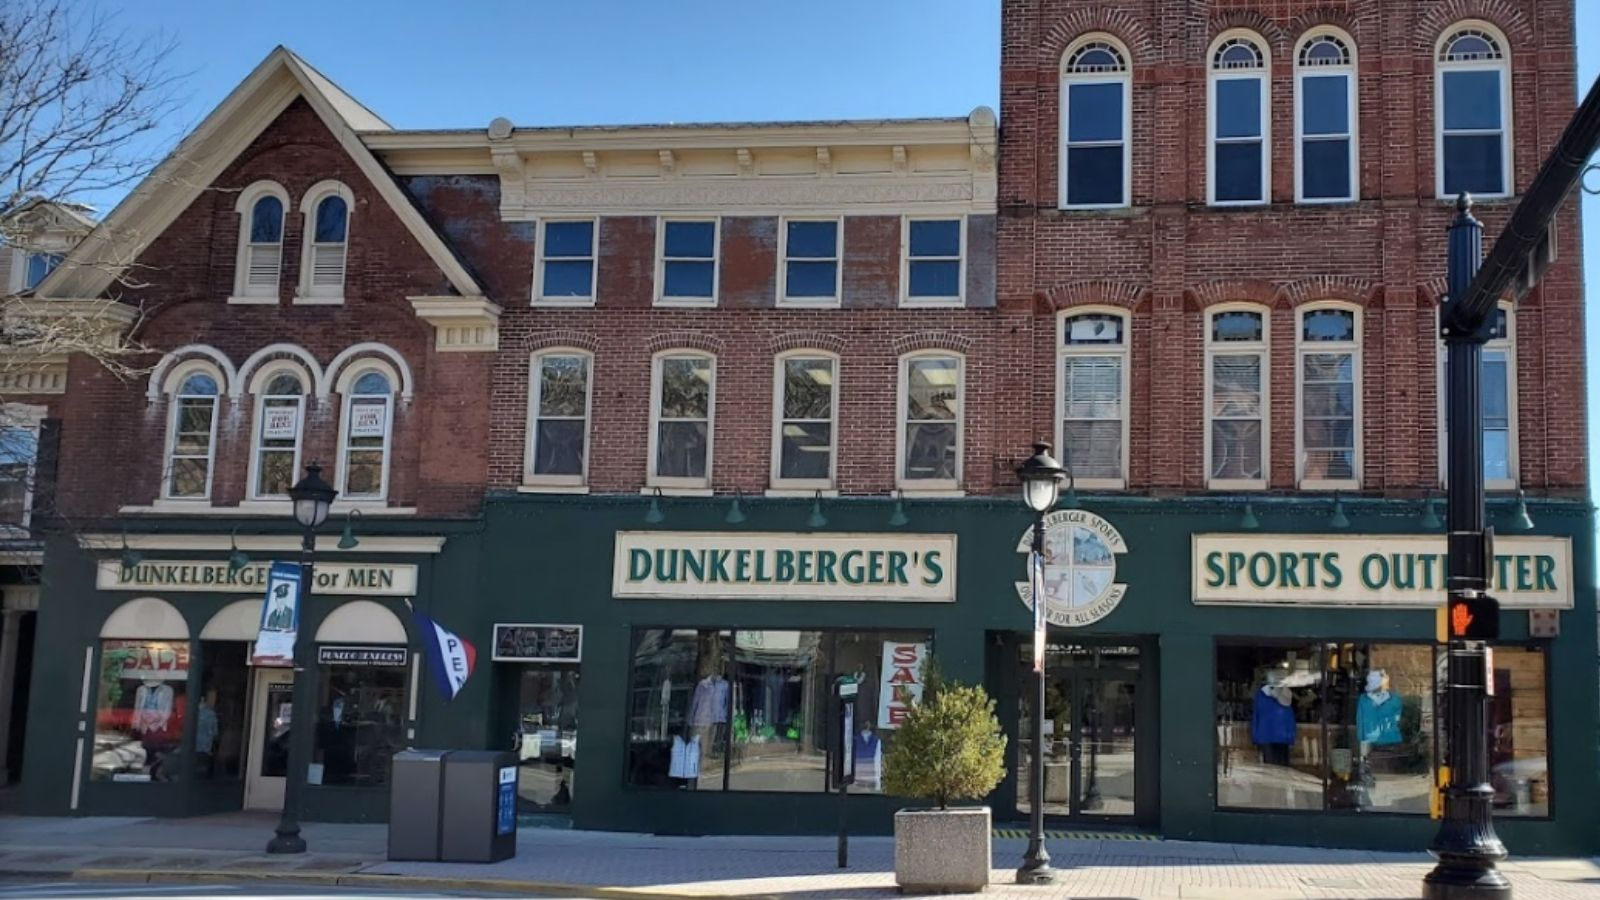 Dunkelberger's Chooses AXIS POS for Multi-Store Operations